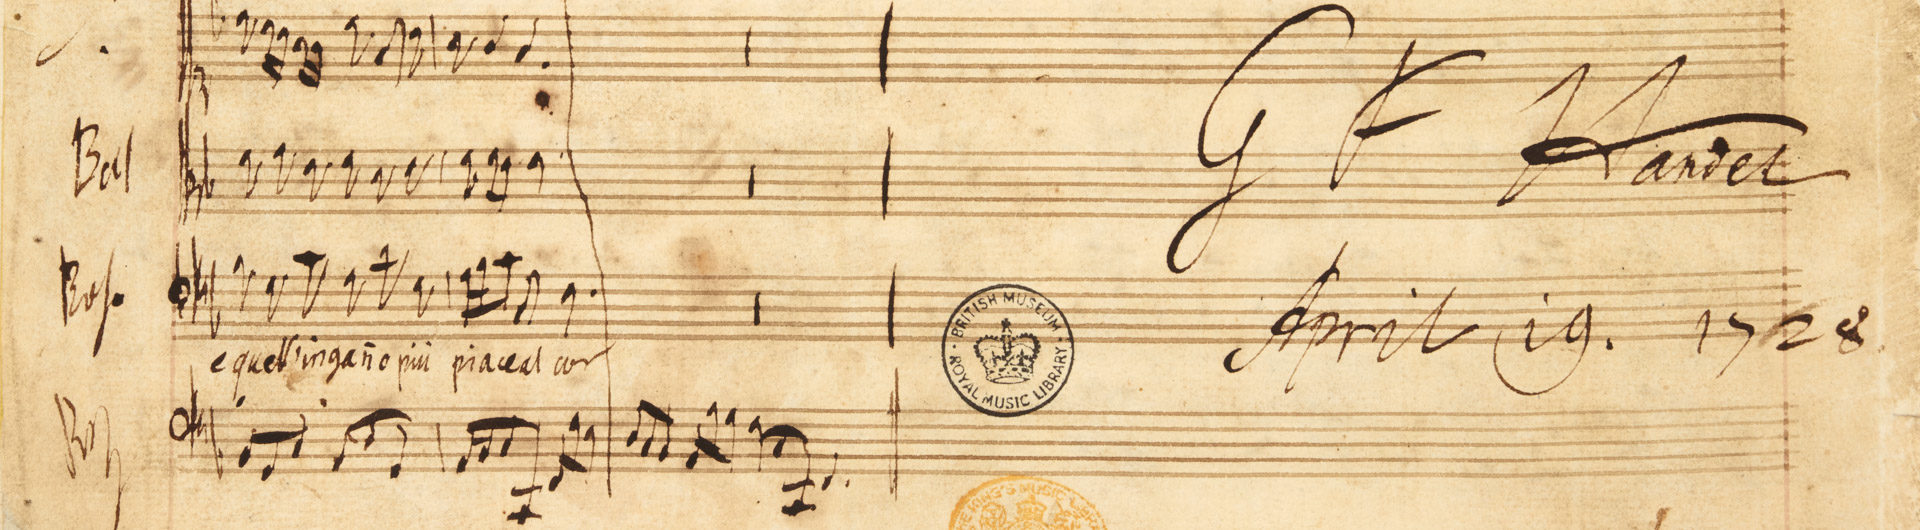 Final page of the autograph score of Tolomeo © British Library Board (R.M.20.d.1)